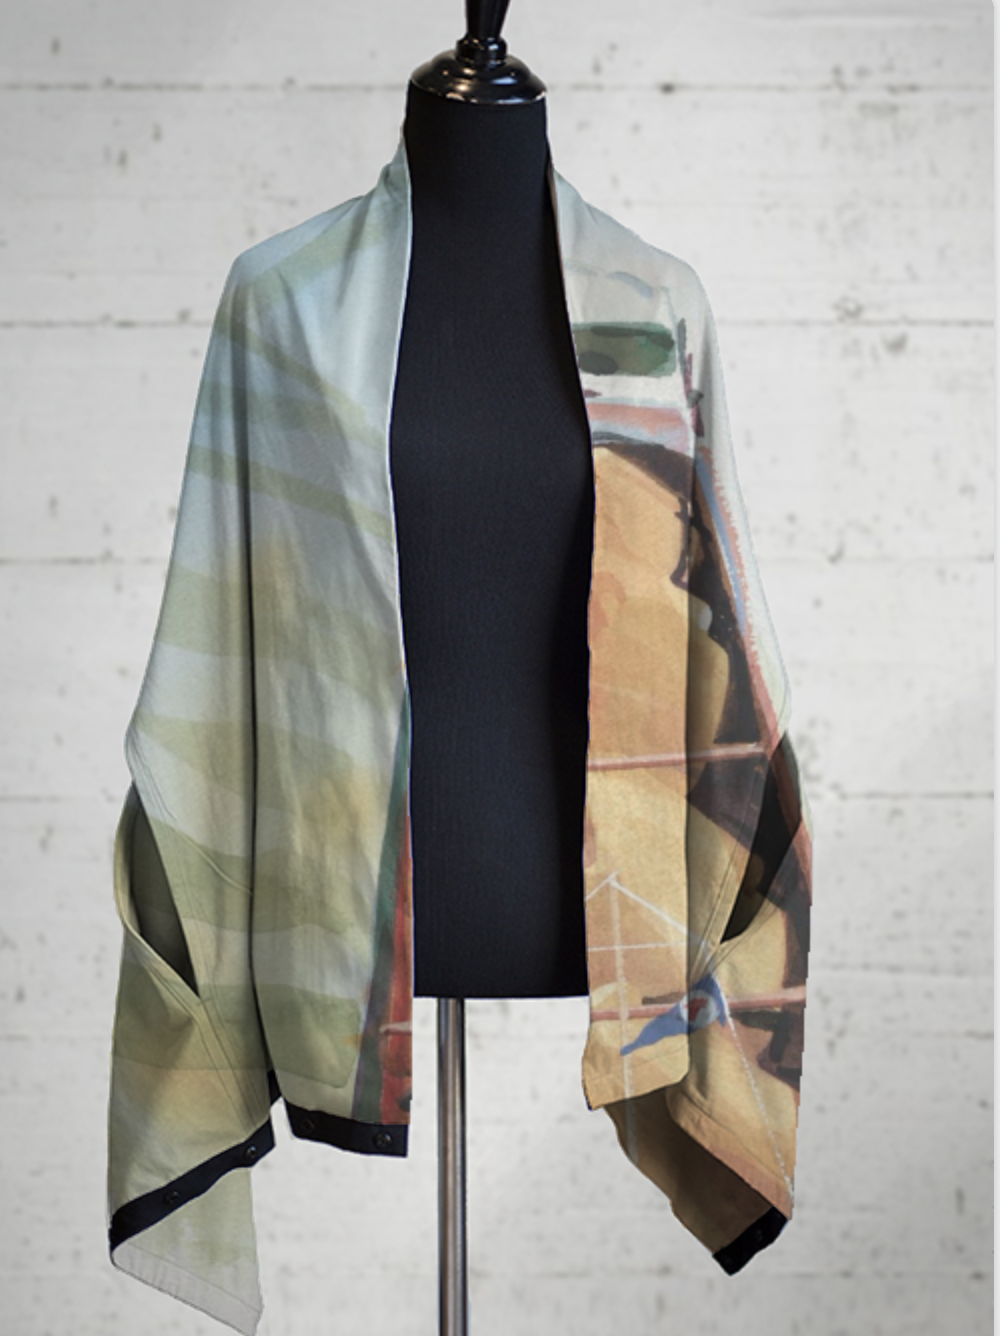 shawl-WilliamHeydt-VidaCollection2018-7.png